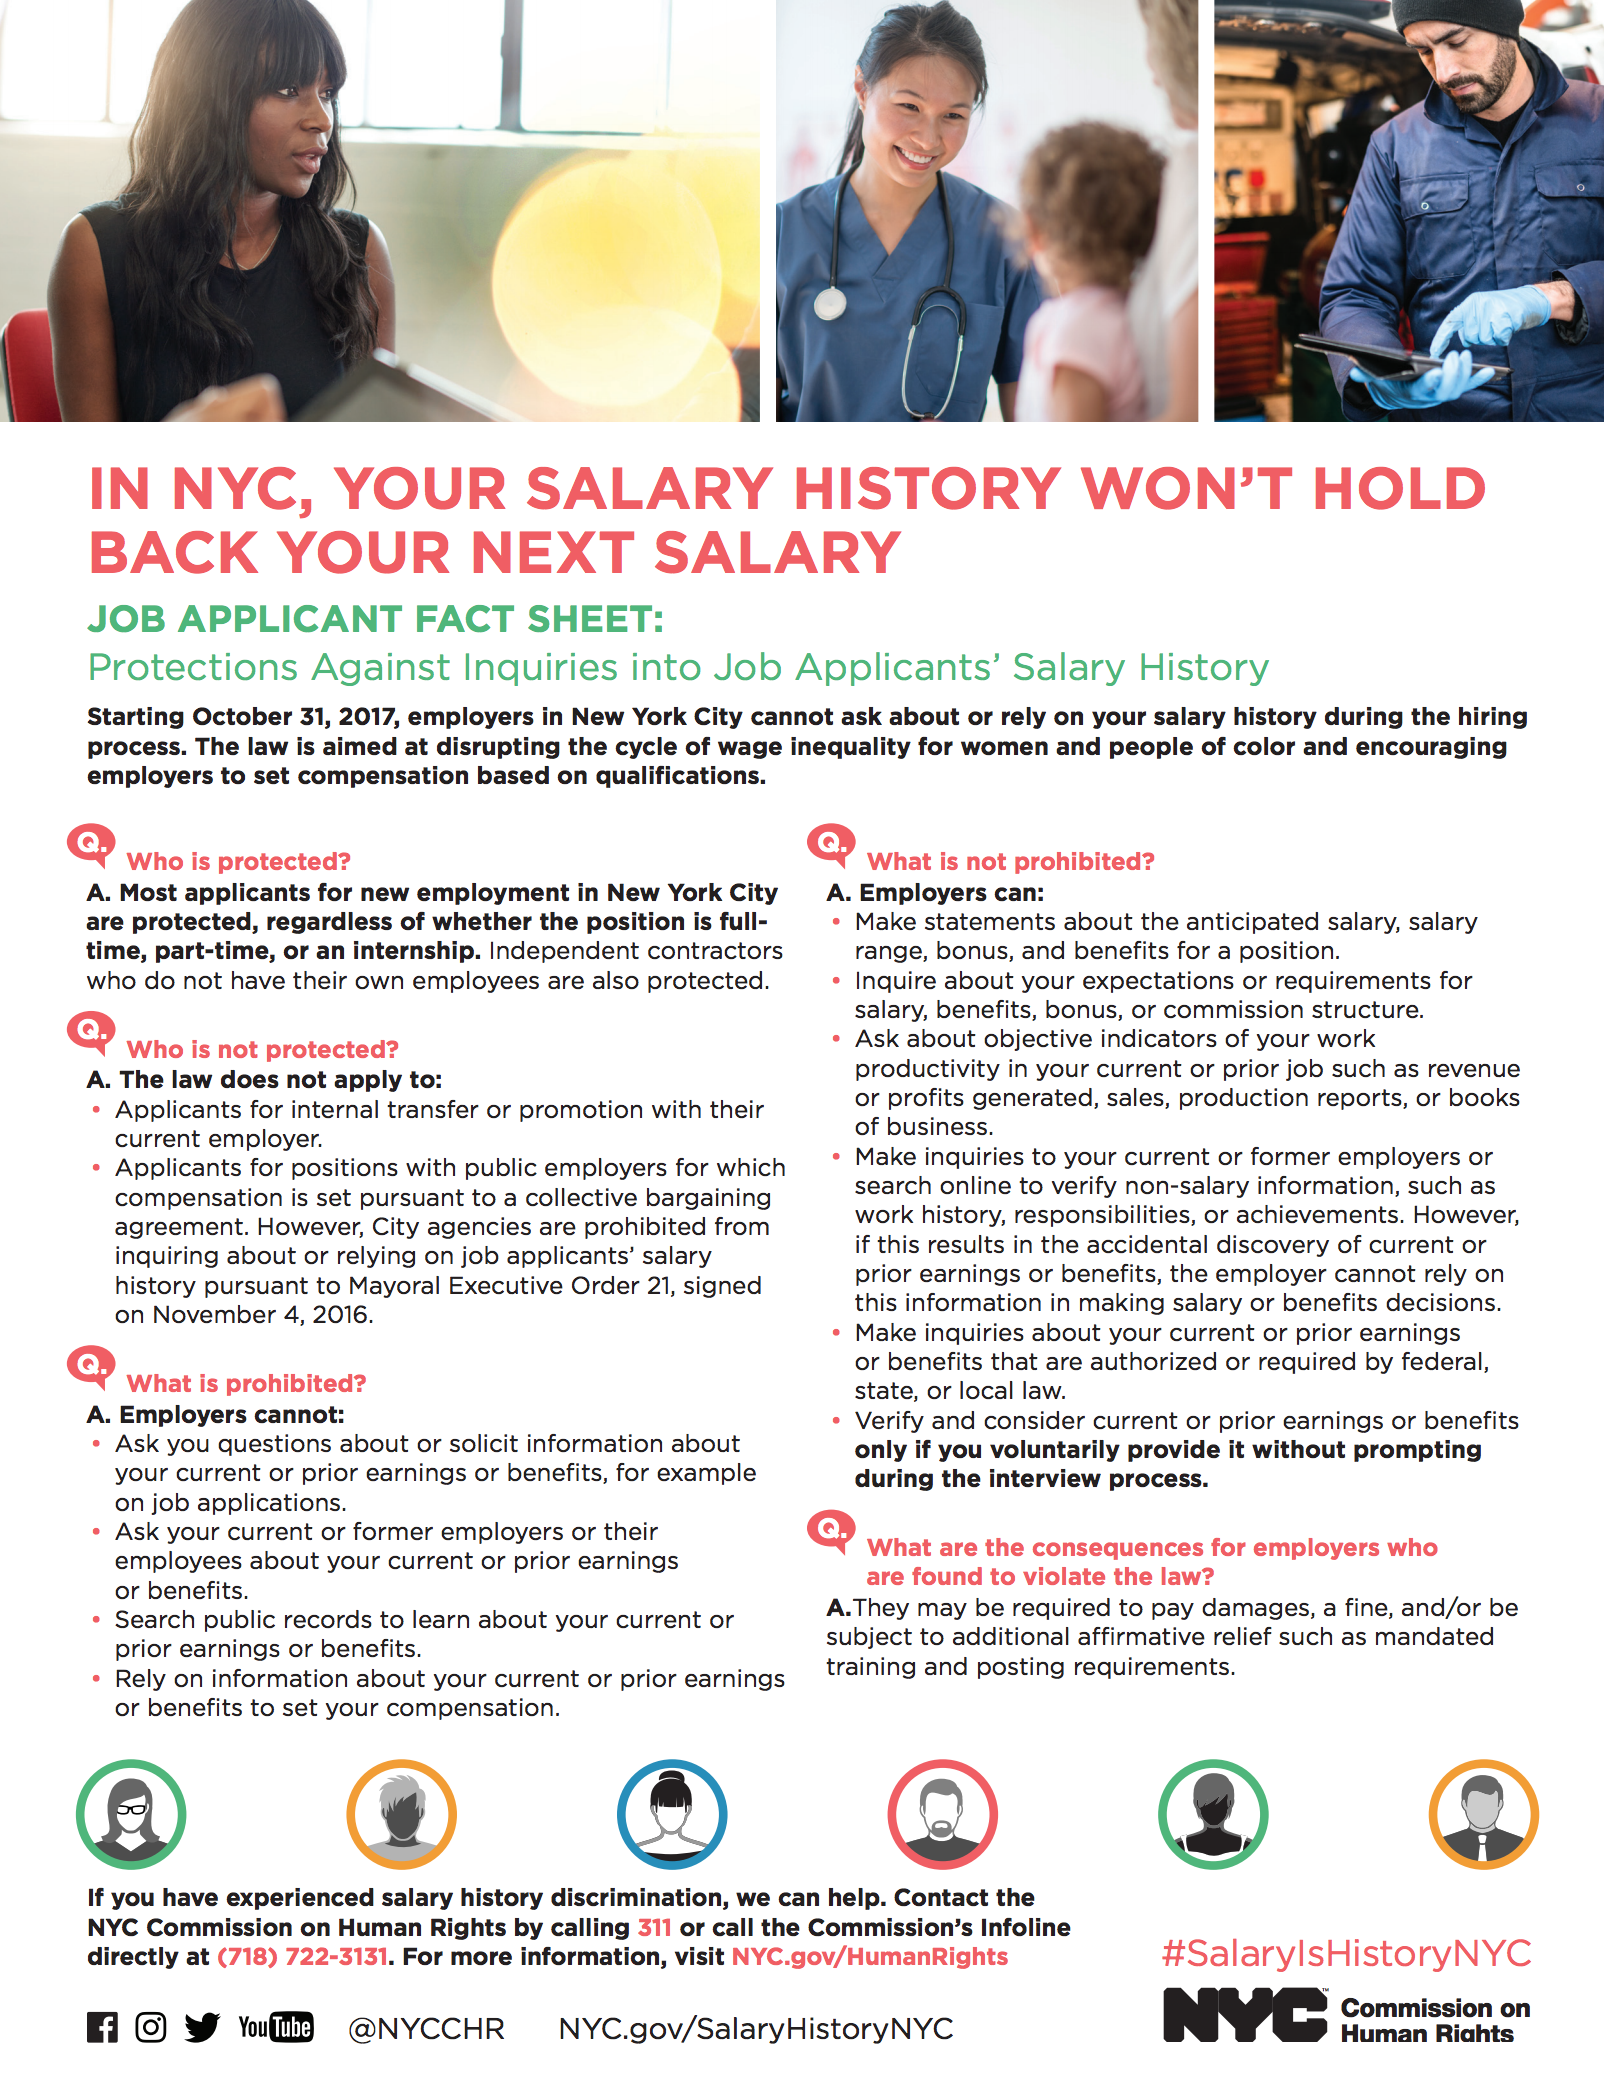 Salary History Law Factsheet For Job Applicants Cchr